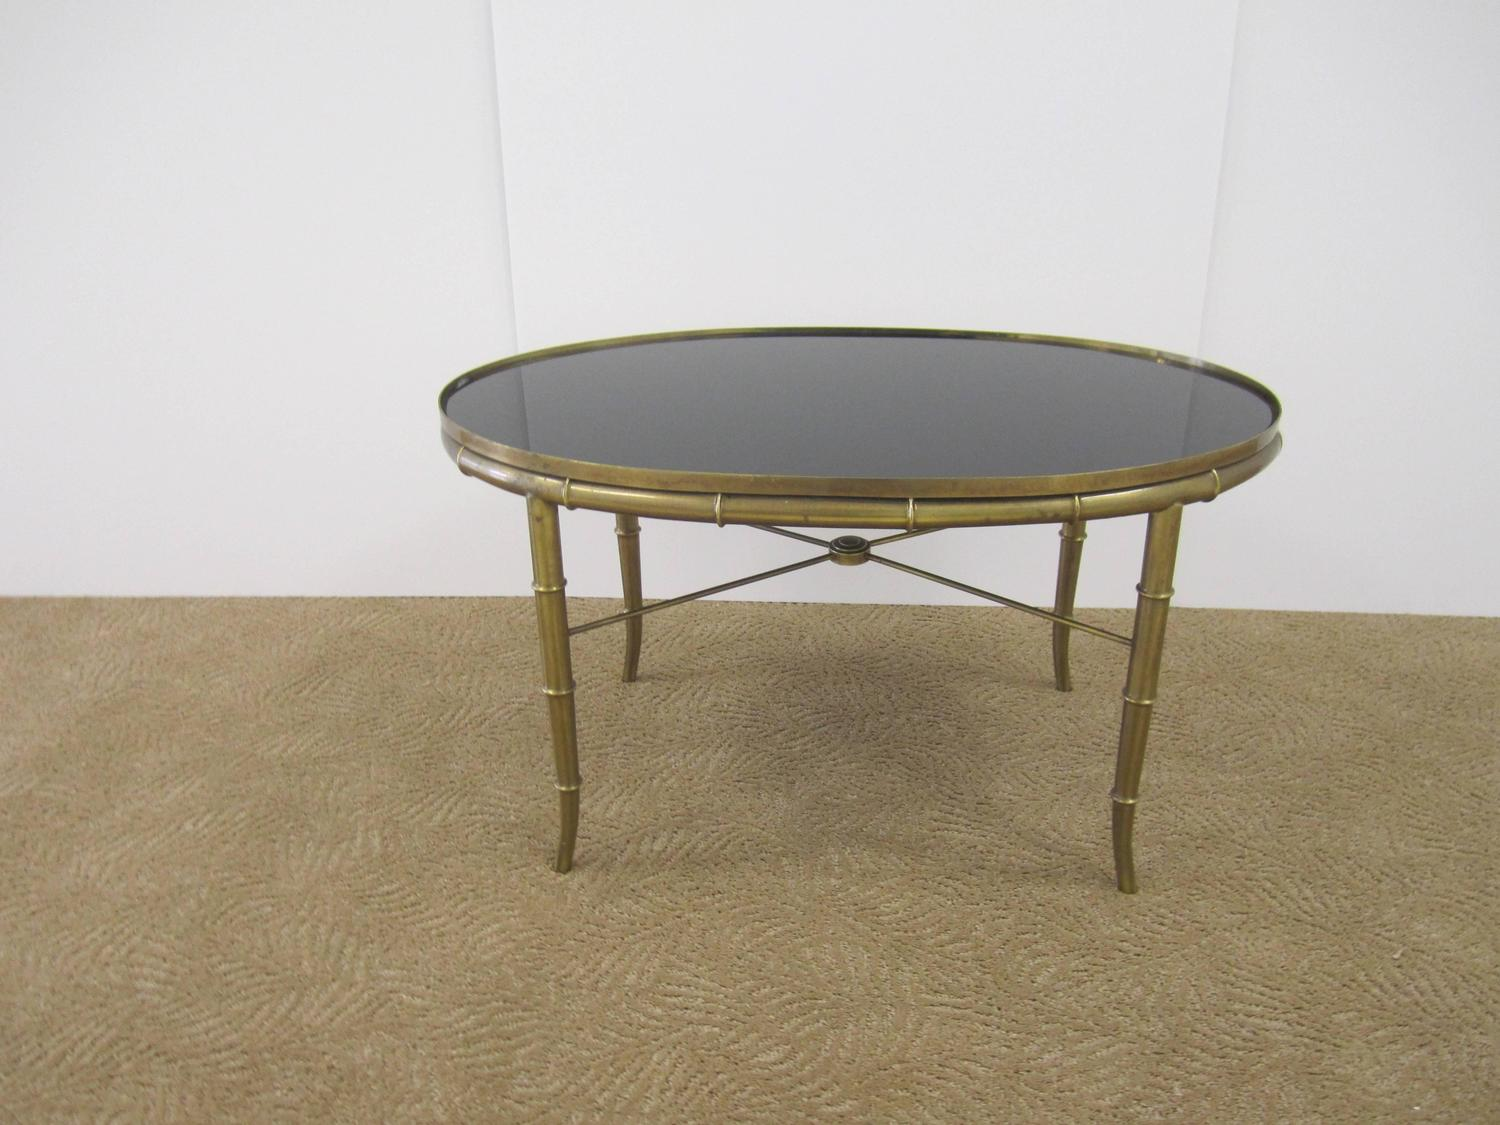 Vintage Italian Brass Cocktail Table With Black Mirrored Glass Top Italy 1960s For Sale At 1stdibs